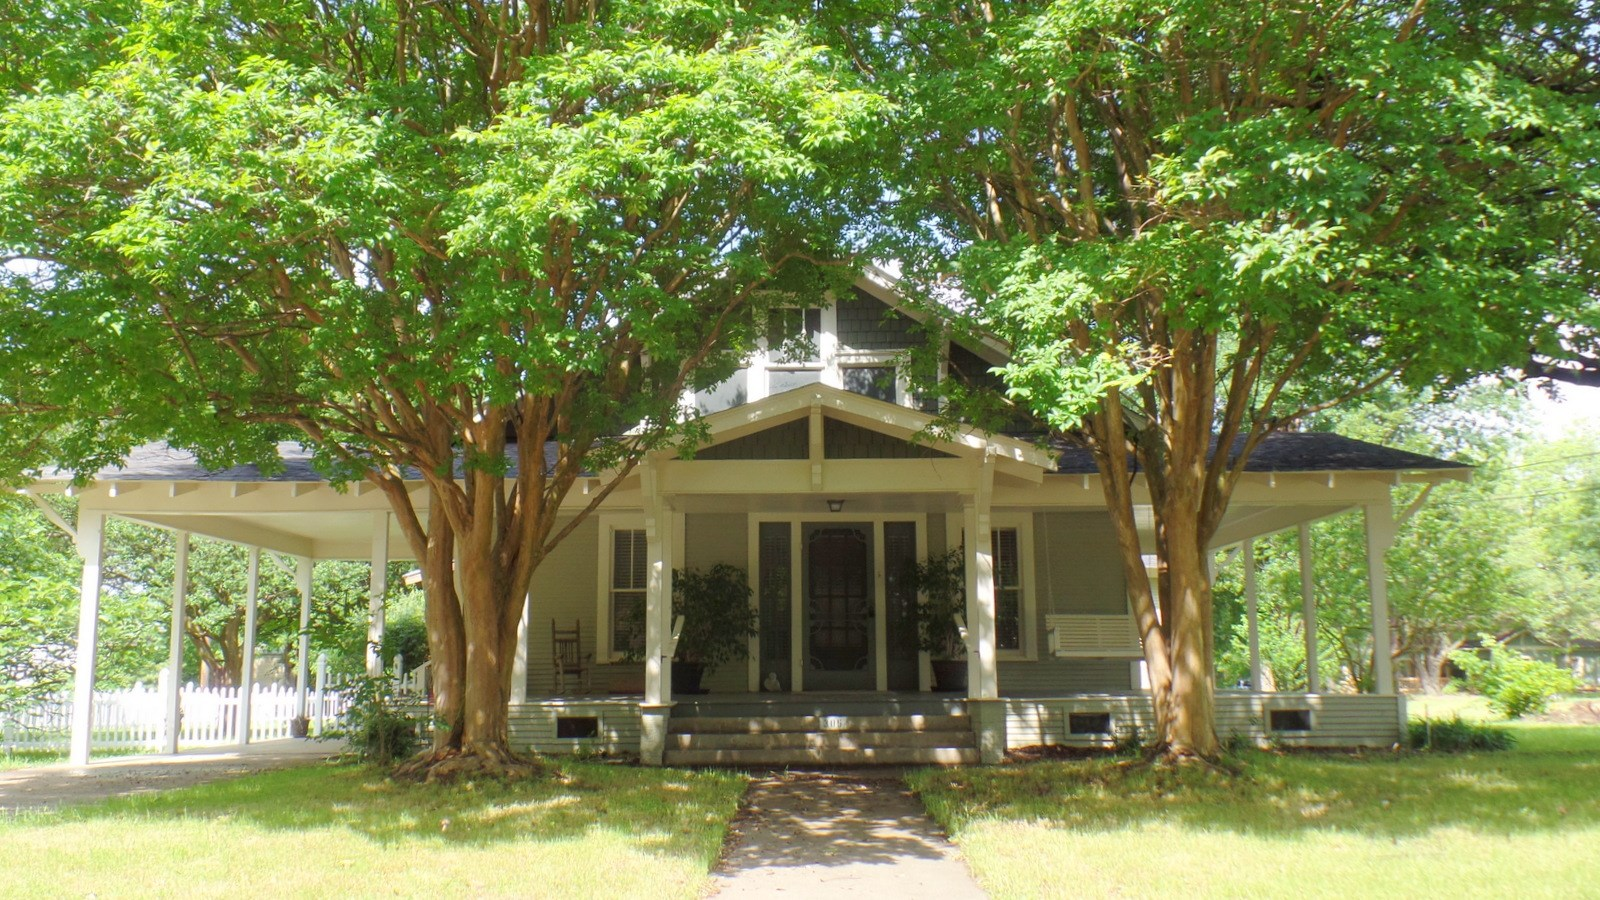 MOVE-IN READY 1930's UPDATED HOME QUITMAN, TEXAS EAST OF DFW